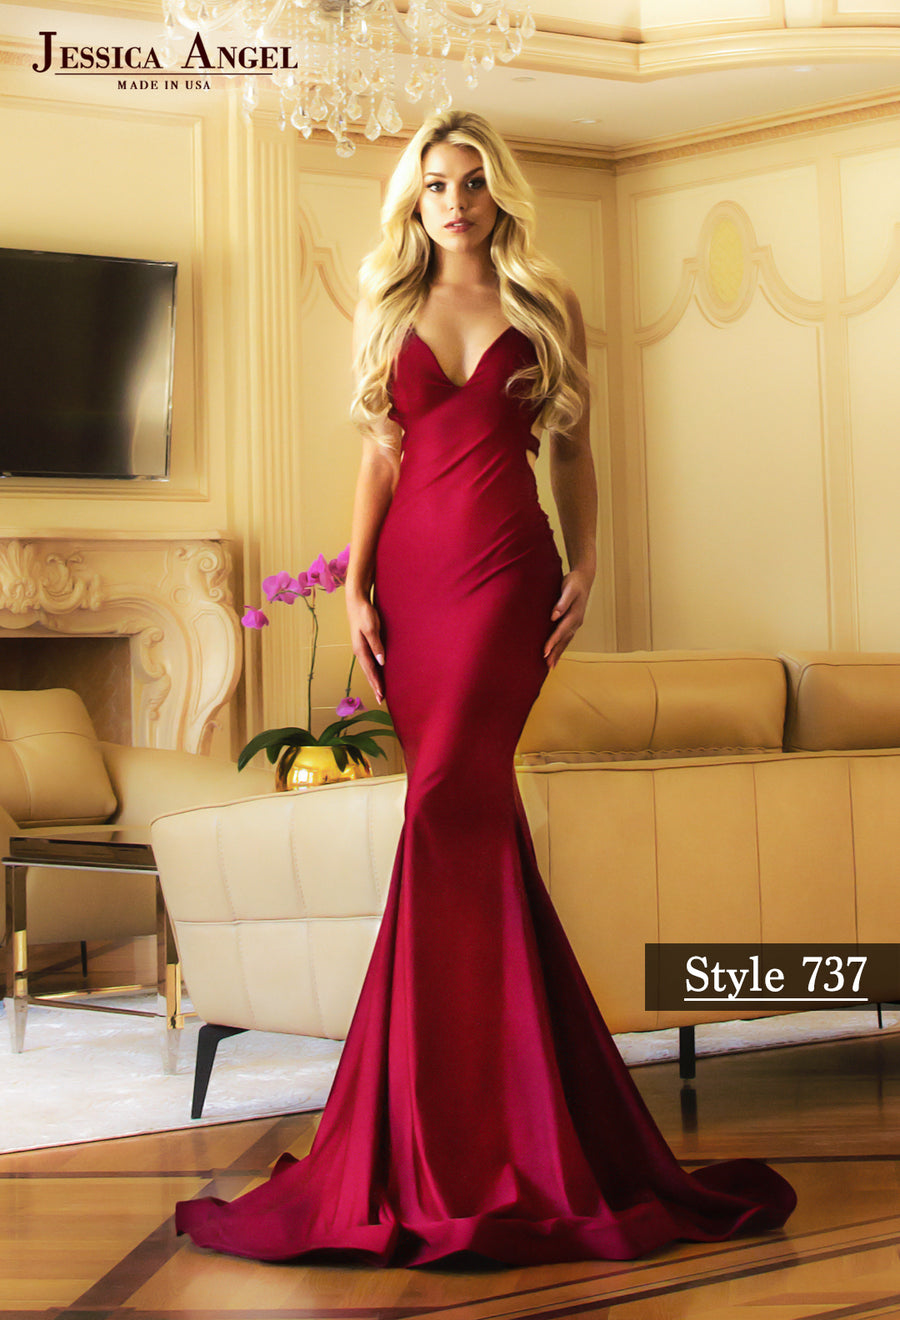 aa7b53fe4b6e Jessica Angel bridesmaids and prom dresses at Mia Bella Couture